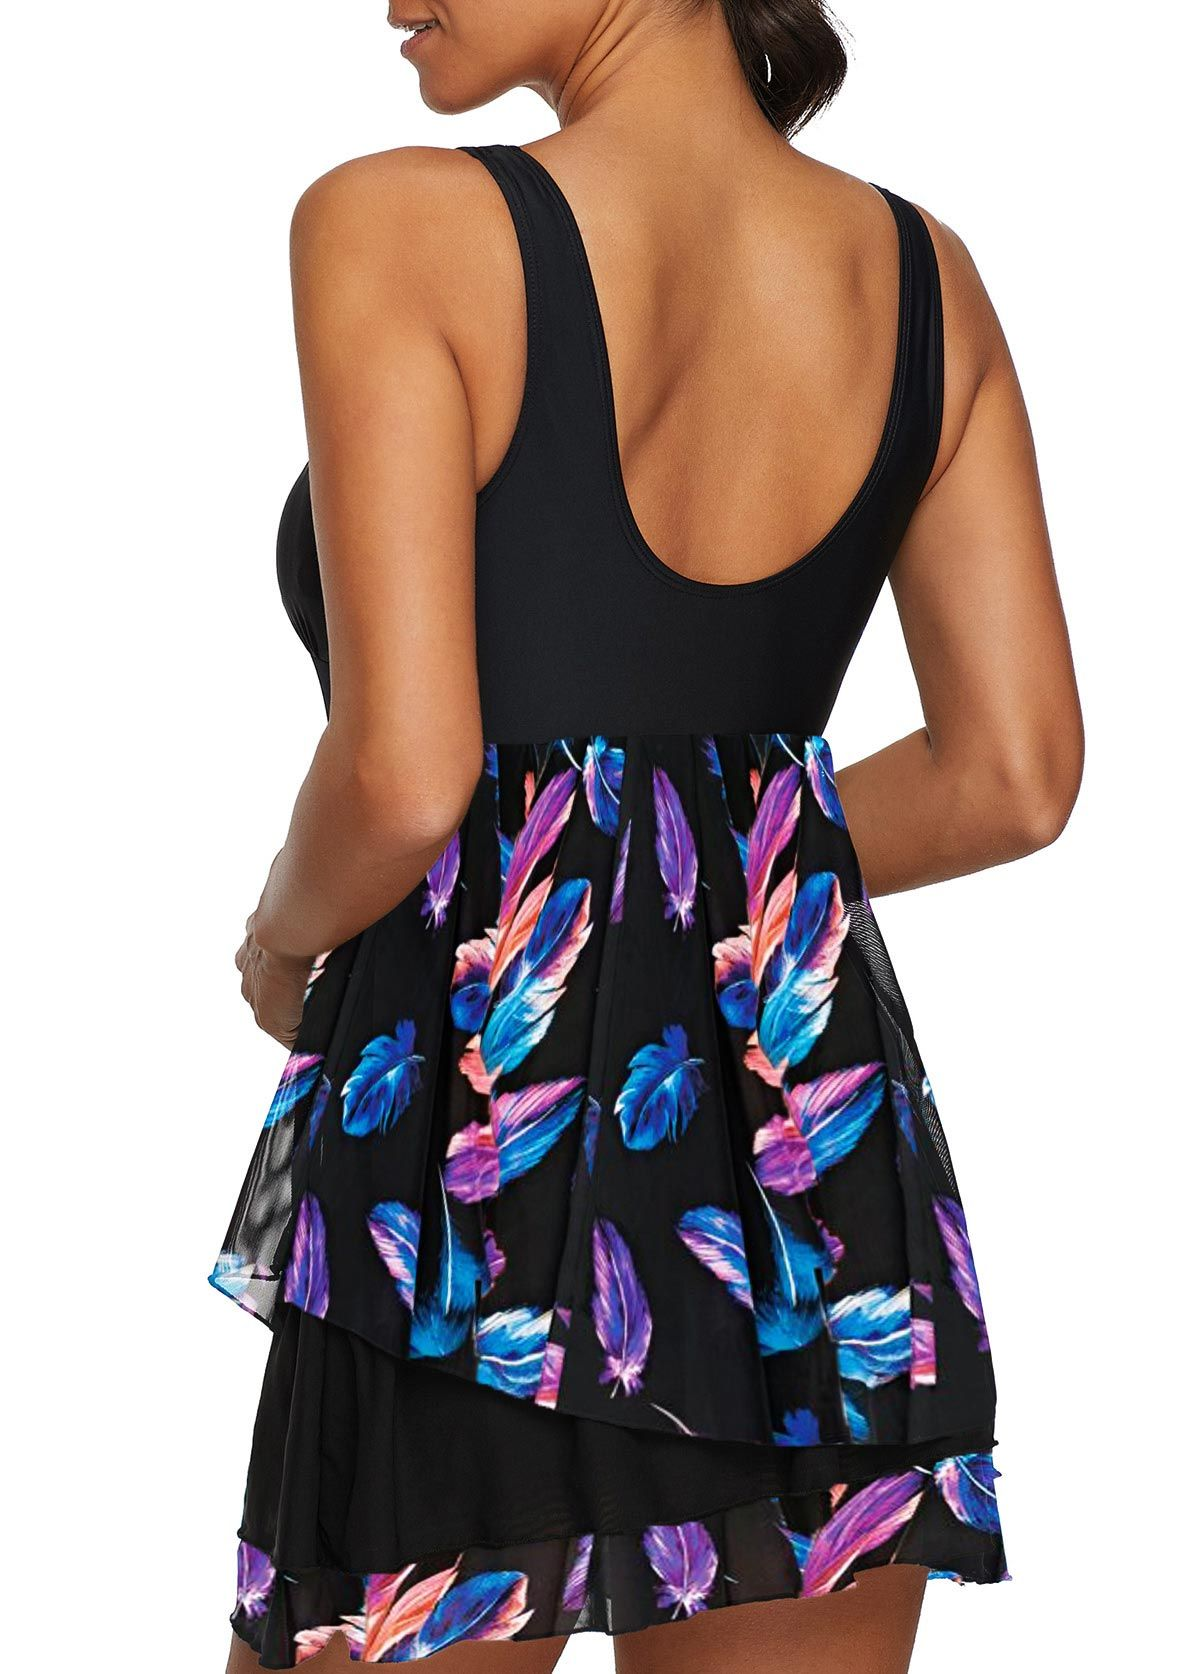 c6bc38499 Feather Print Scoop Back Padded Swimdress and Panty | Rosewe.com - USD  $30.49